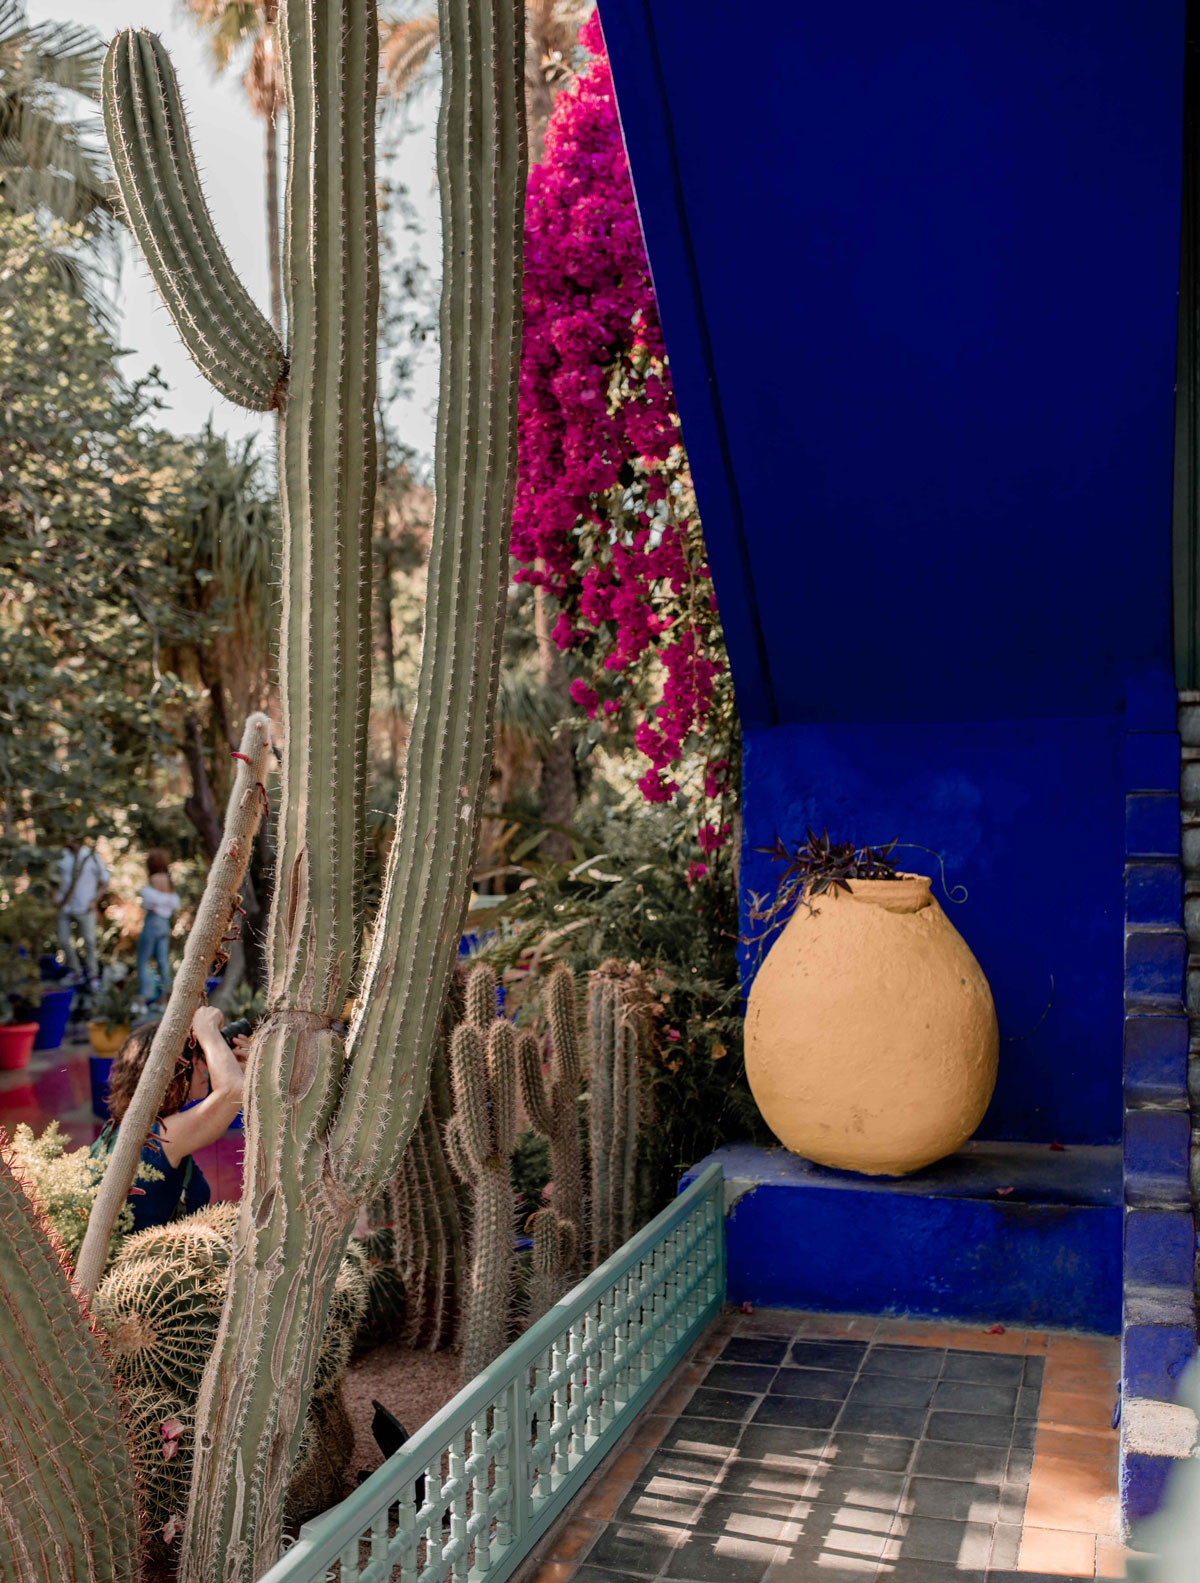 3-Top-things-to-do-in-marrakech-Bucket-list-kelseyinlondon-Kelsey-Heinrichs--What-to-do-in-marrakech--Where-to-go-in-marrakech-top-places-in-marrakech-le-jardin-majorelle